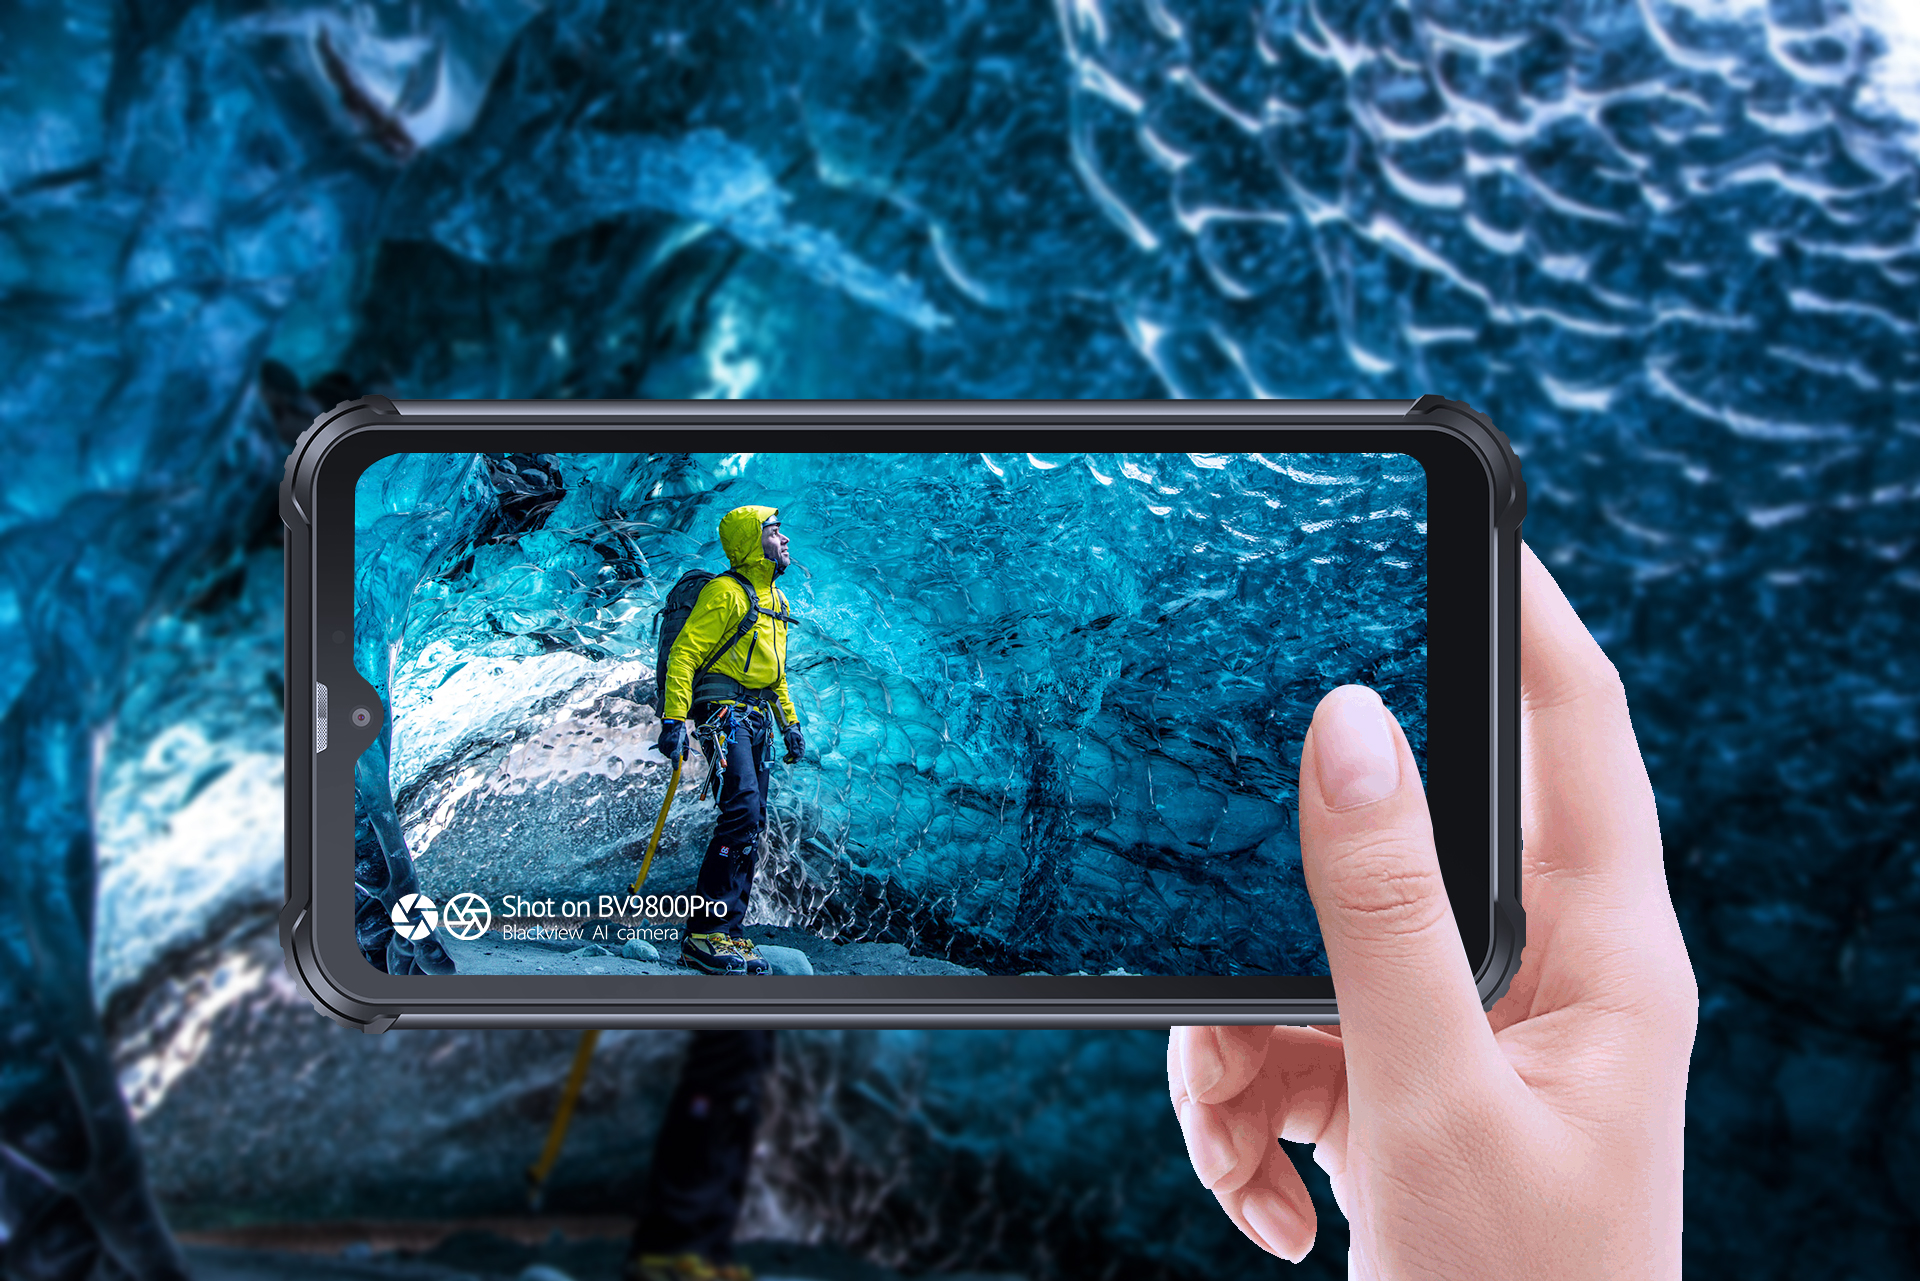 The Blackview BV9800 Pro is the world's first rugged phone with a 48MP camera and thermal camera 1